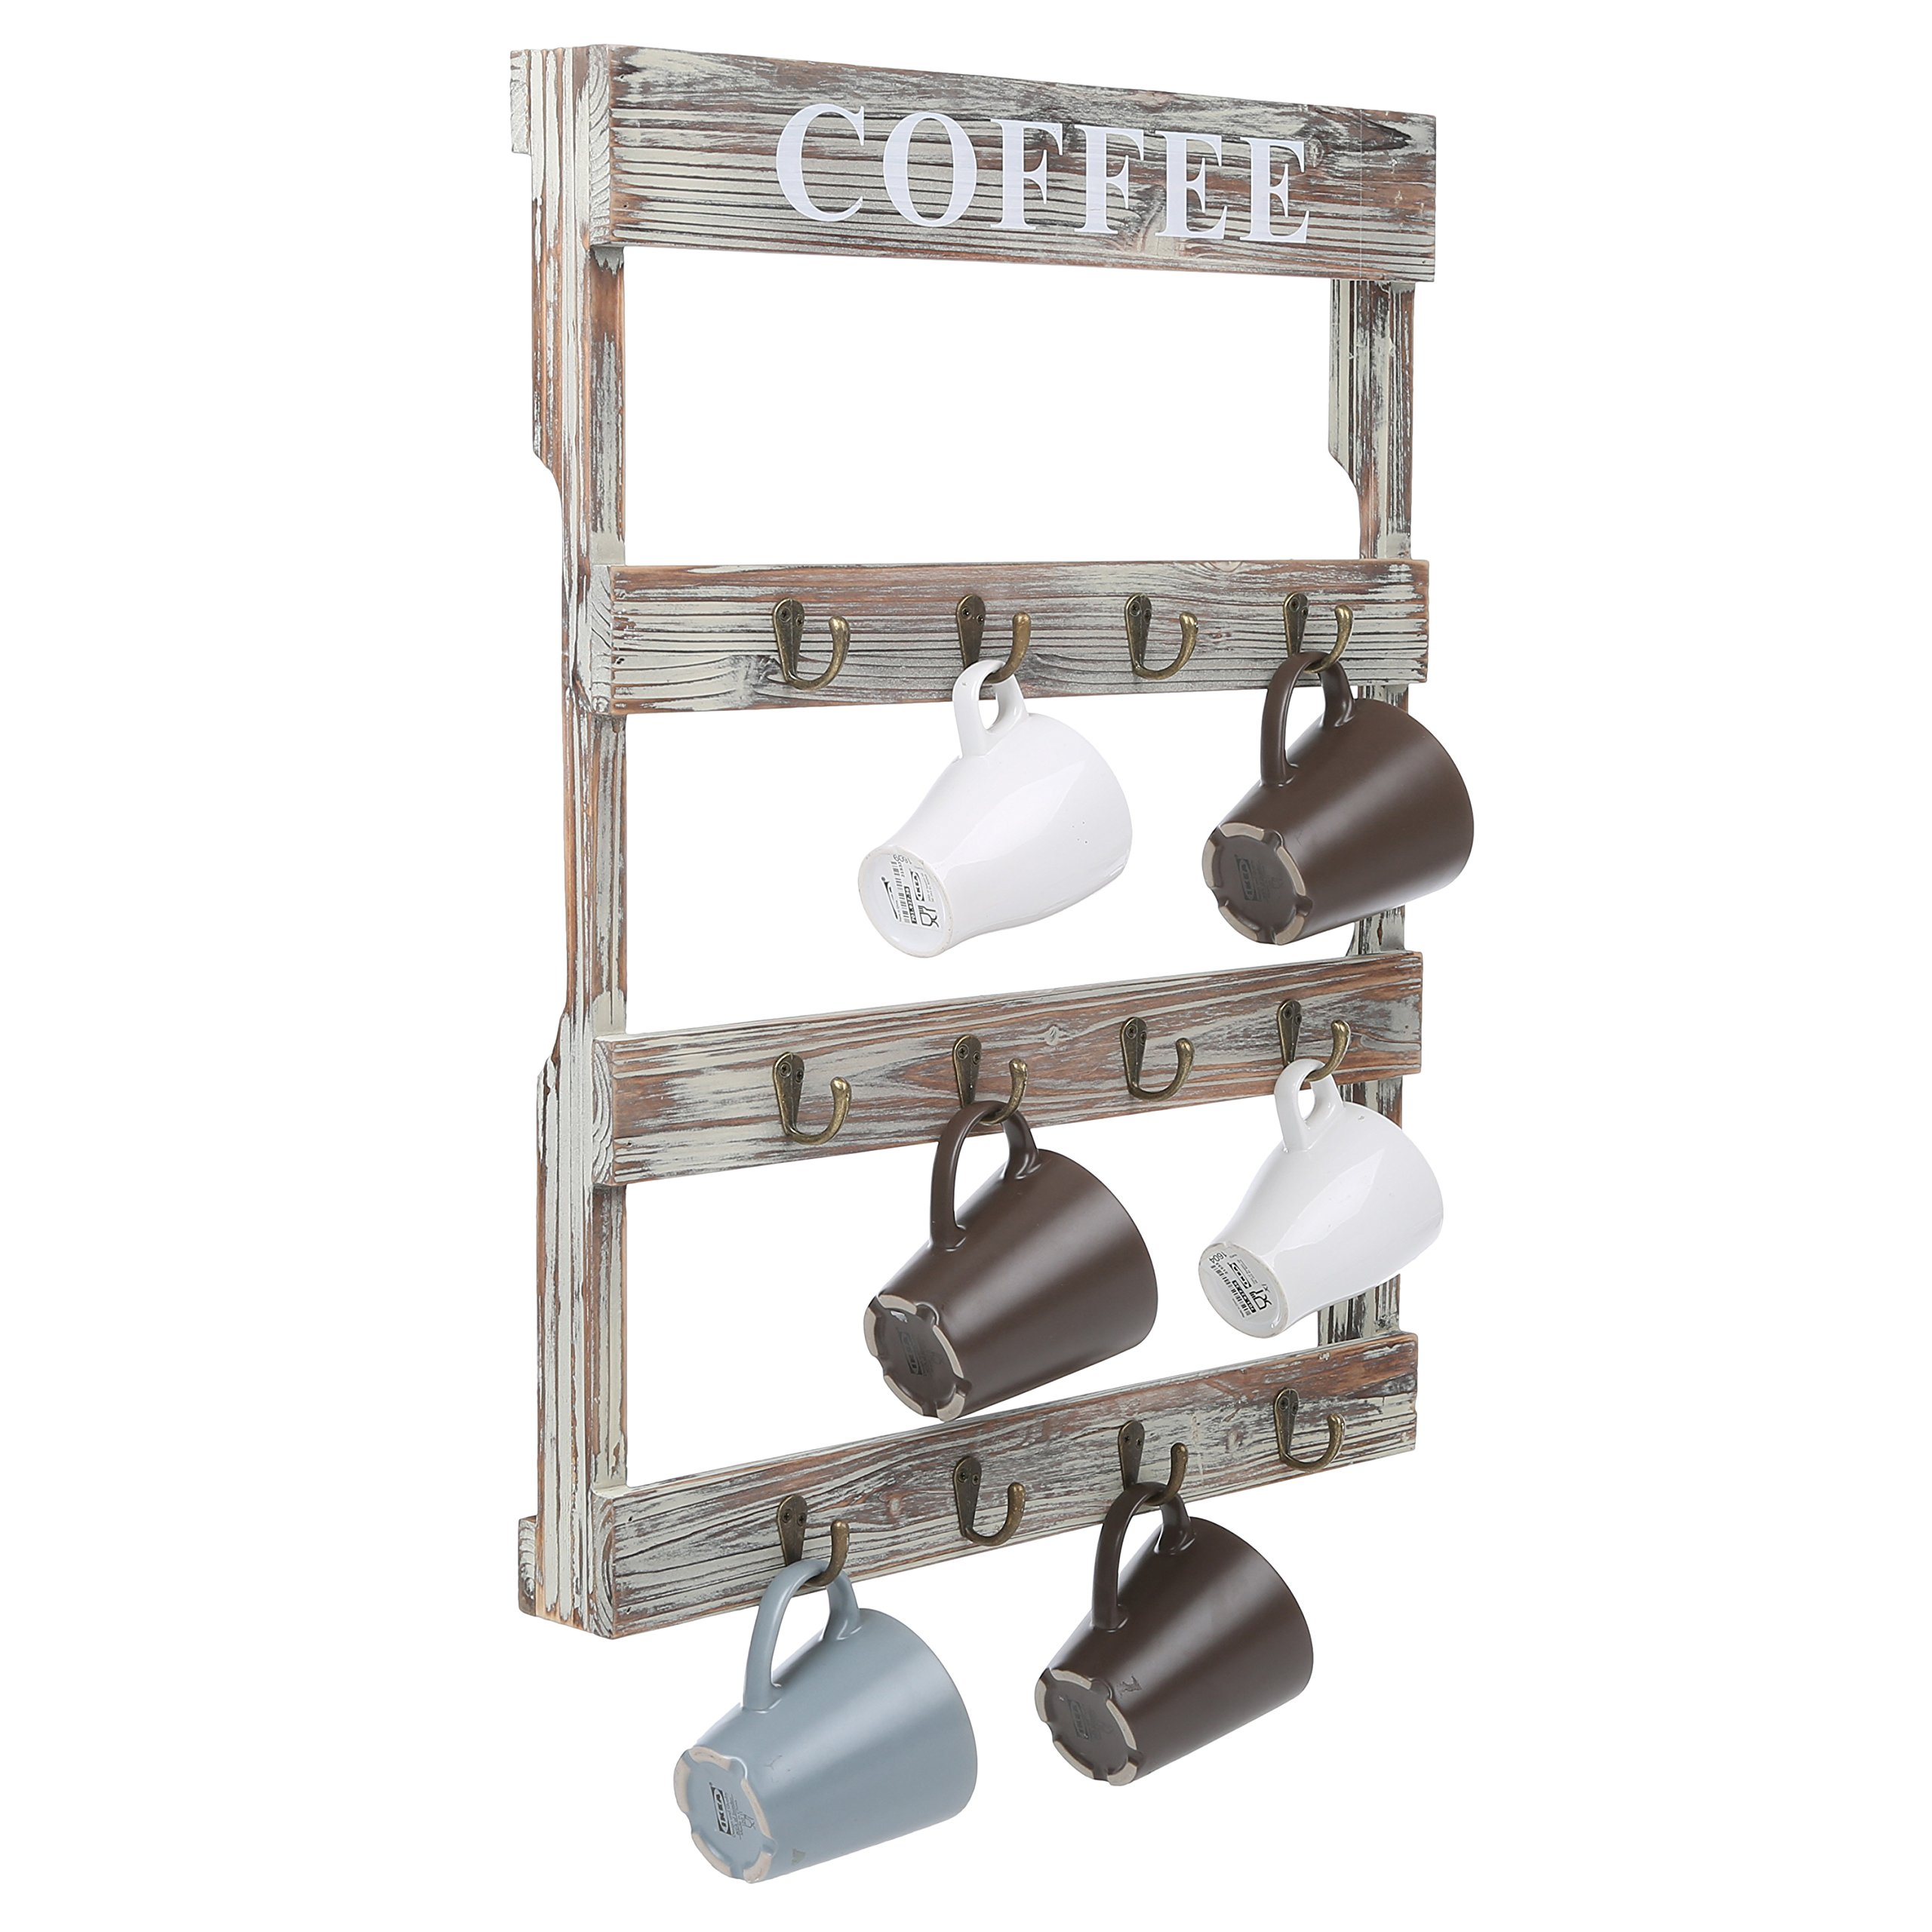 MyGift 12-Hook Rustic Wall-Mounted Wood Coffee Mug Holder, Kitchen Storage Rack, Brown by MyGift